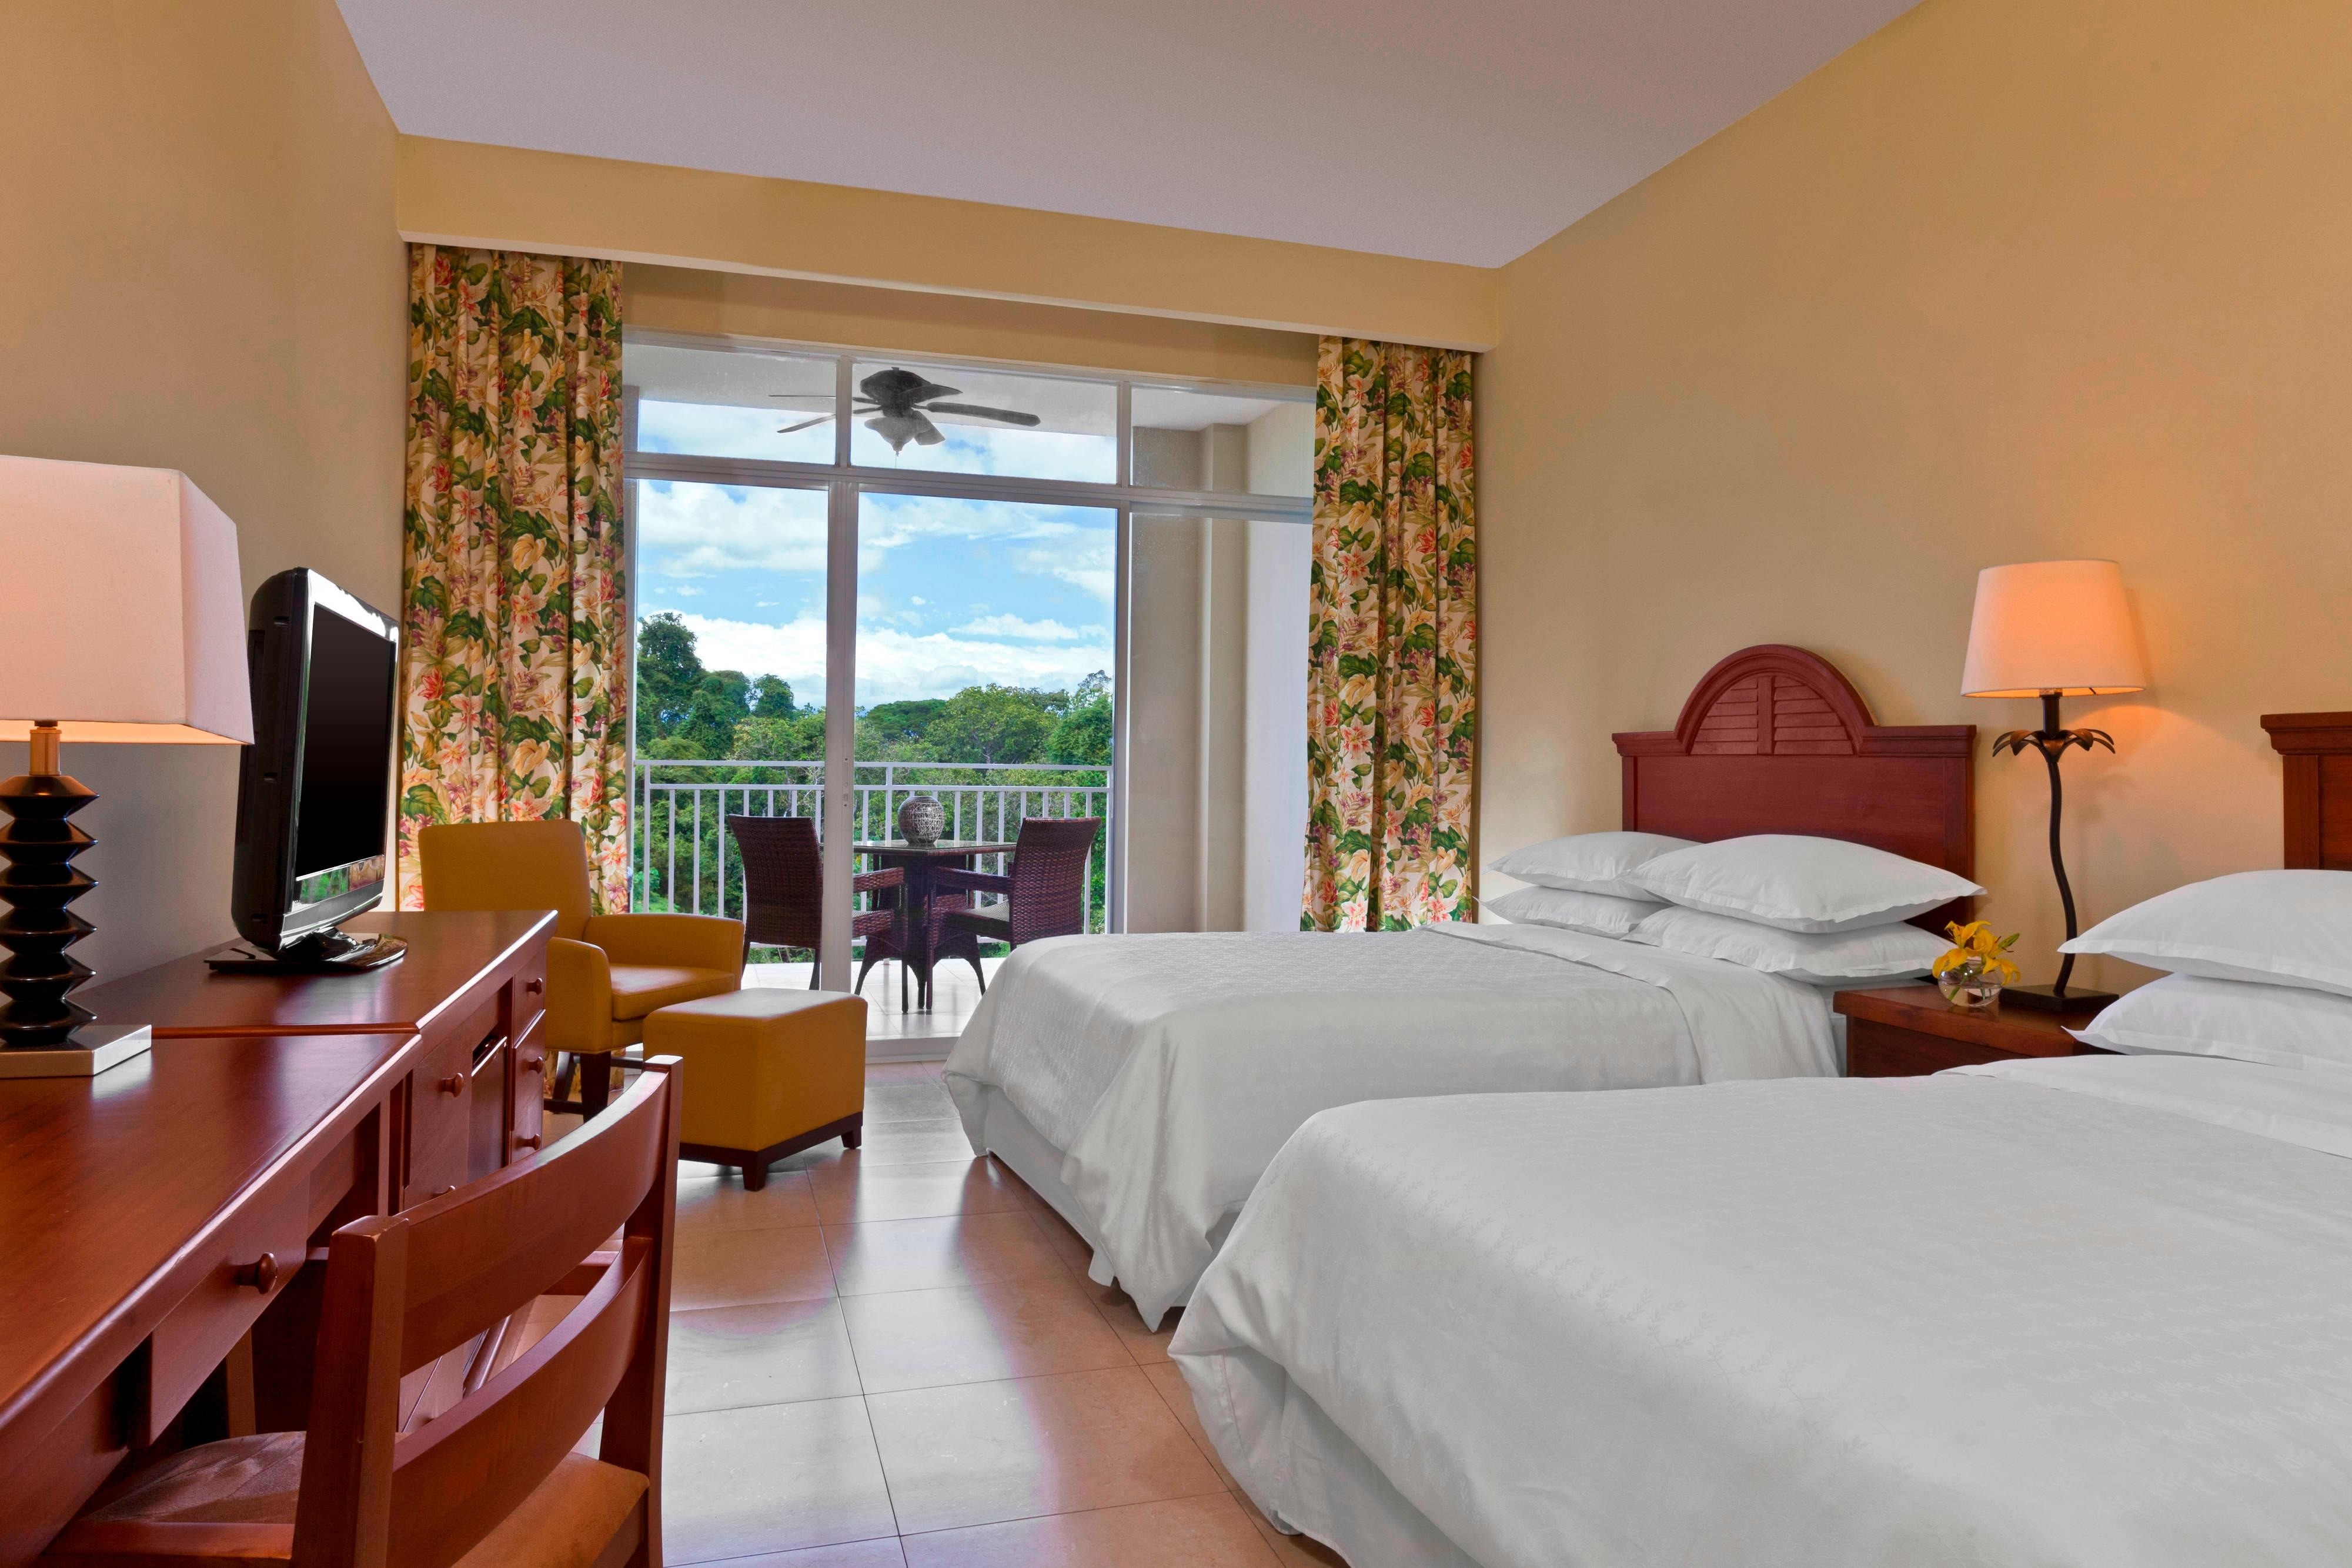 d86b83ac7993 Garden View 2 Double Beds. All-Inclusive ...